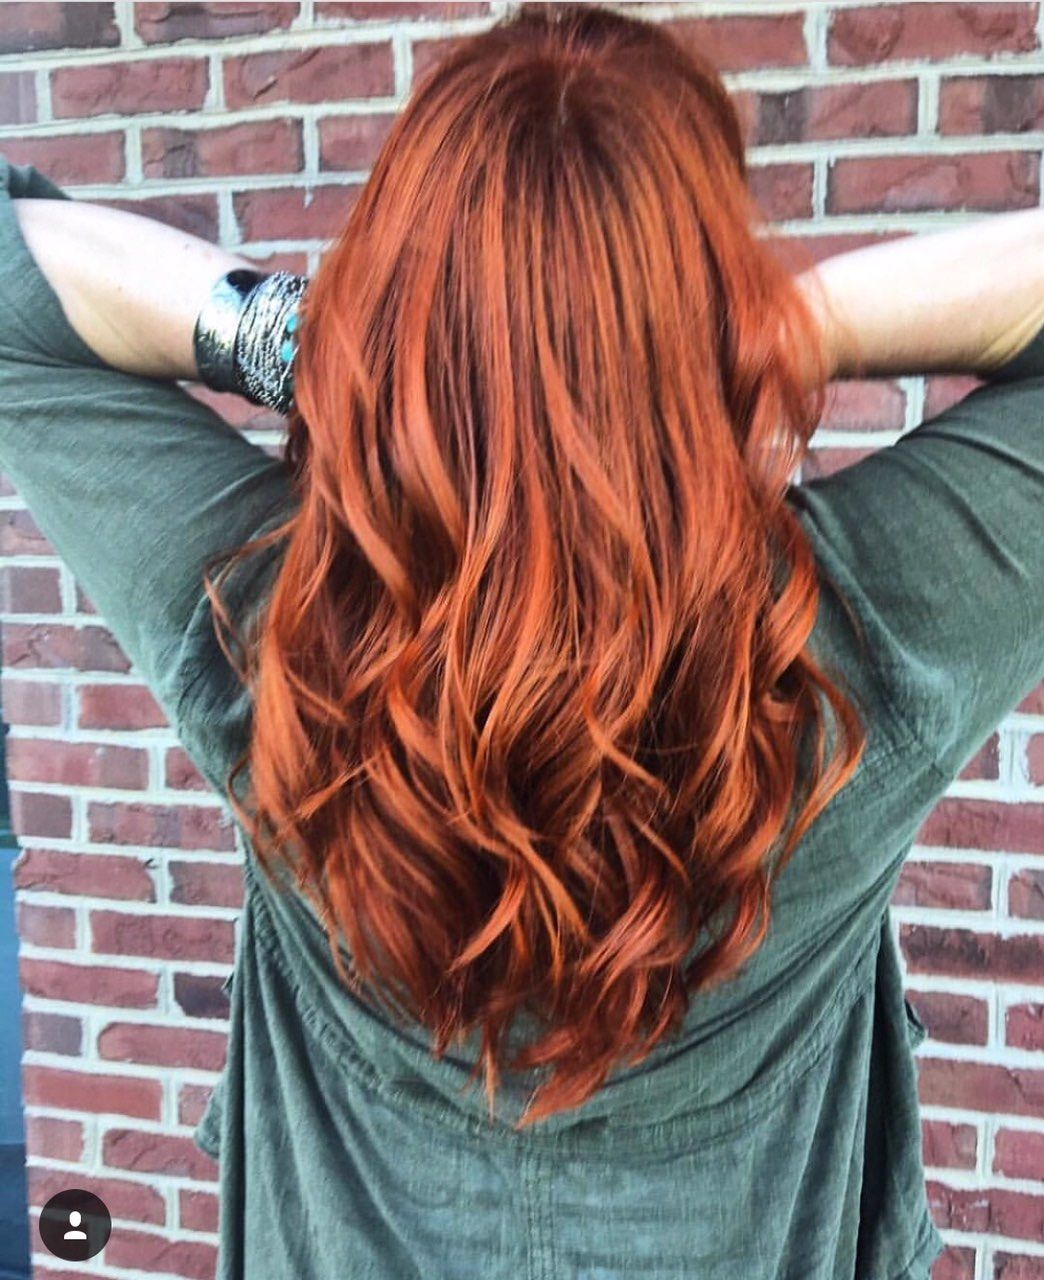 Multi Dimensional Natural Copper Color By The Design Team At G Michael Salon Indy S Premier Oribe Salo Best Hair Salon Cool Hairstyles Hair Inspiration Color